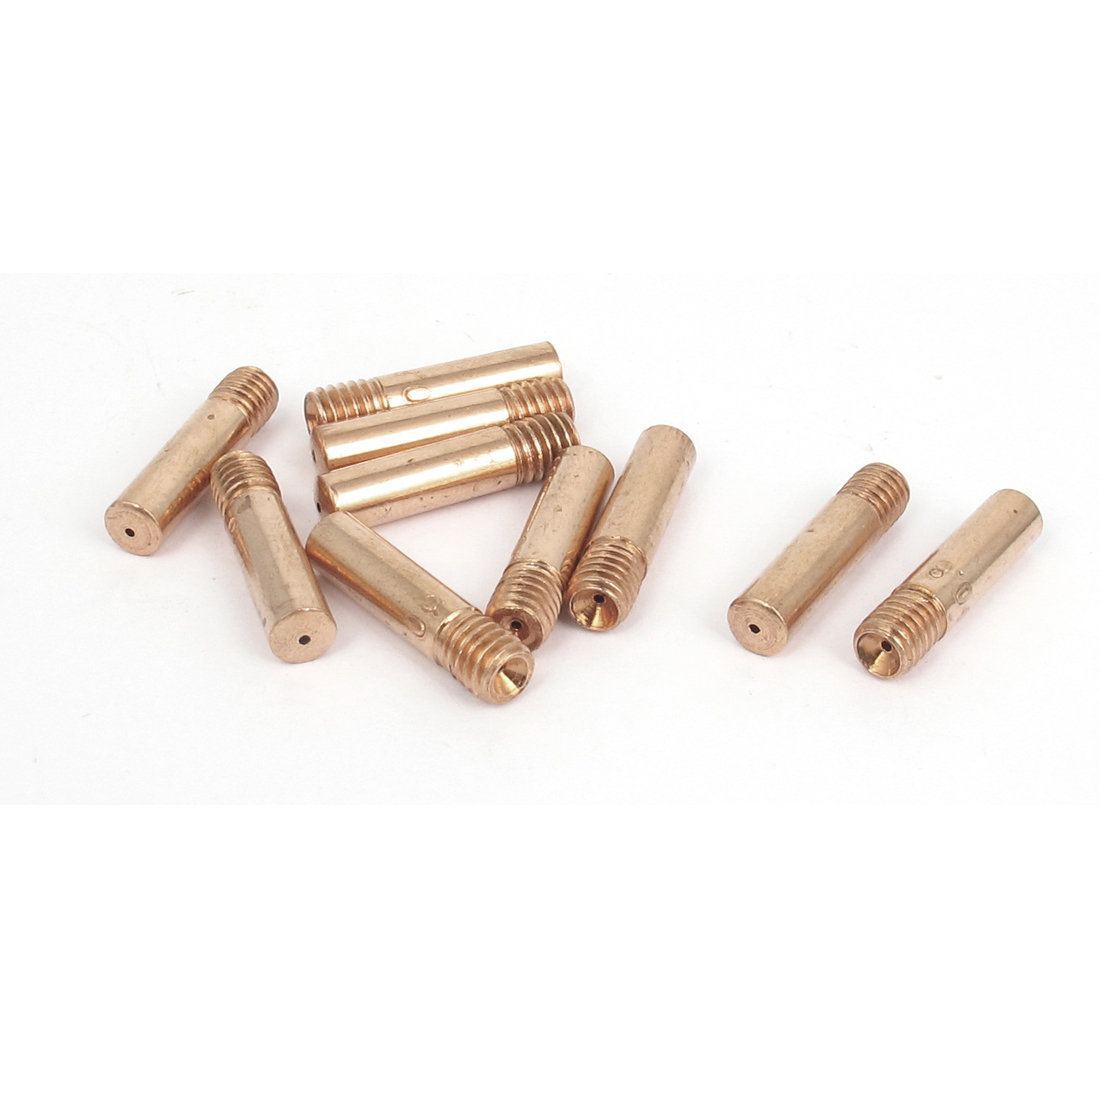 CO2 Welding Solder Torch 0.8mm Nozzle Tip Holder Copper Tone 10 Pcs